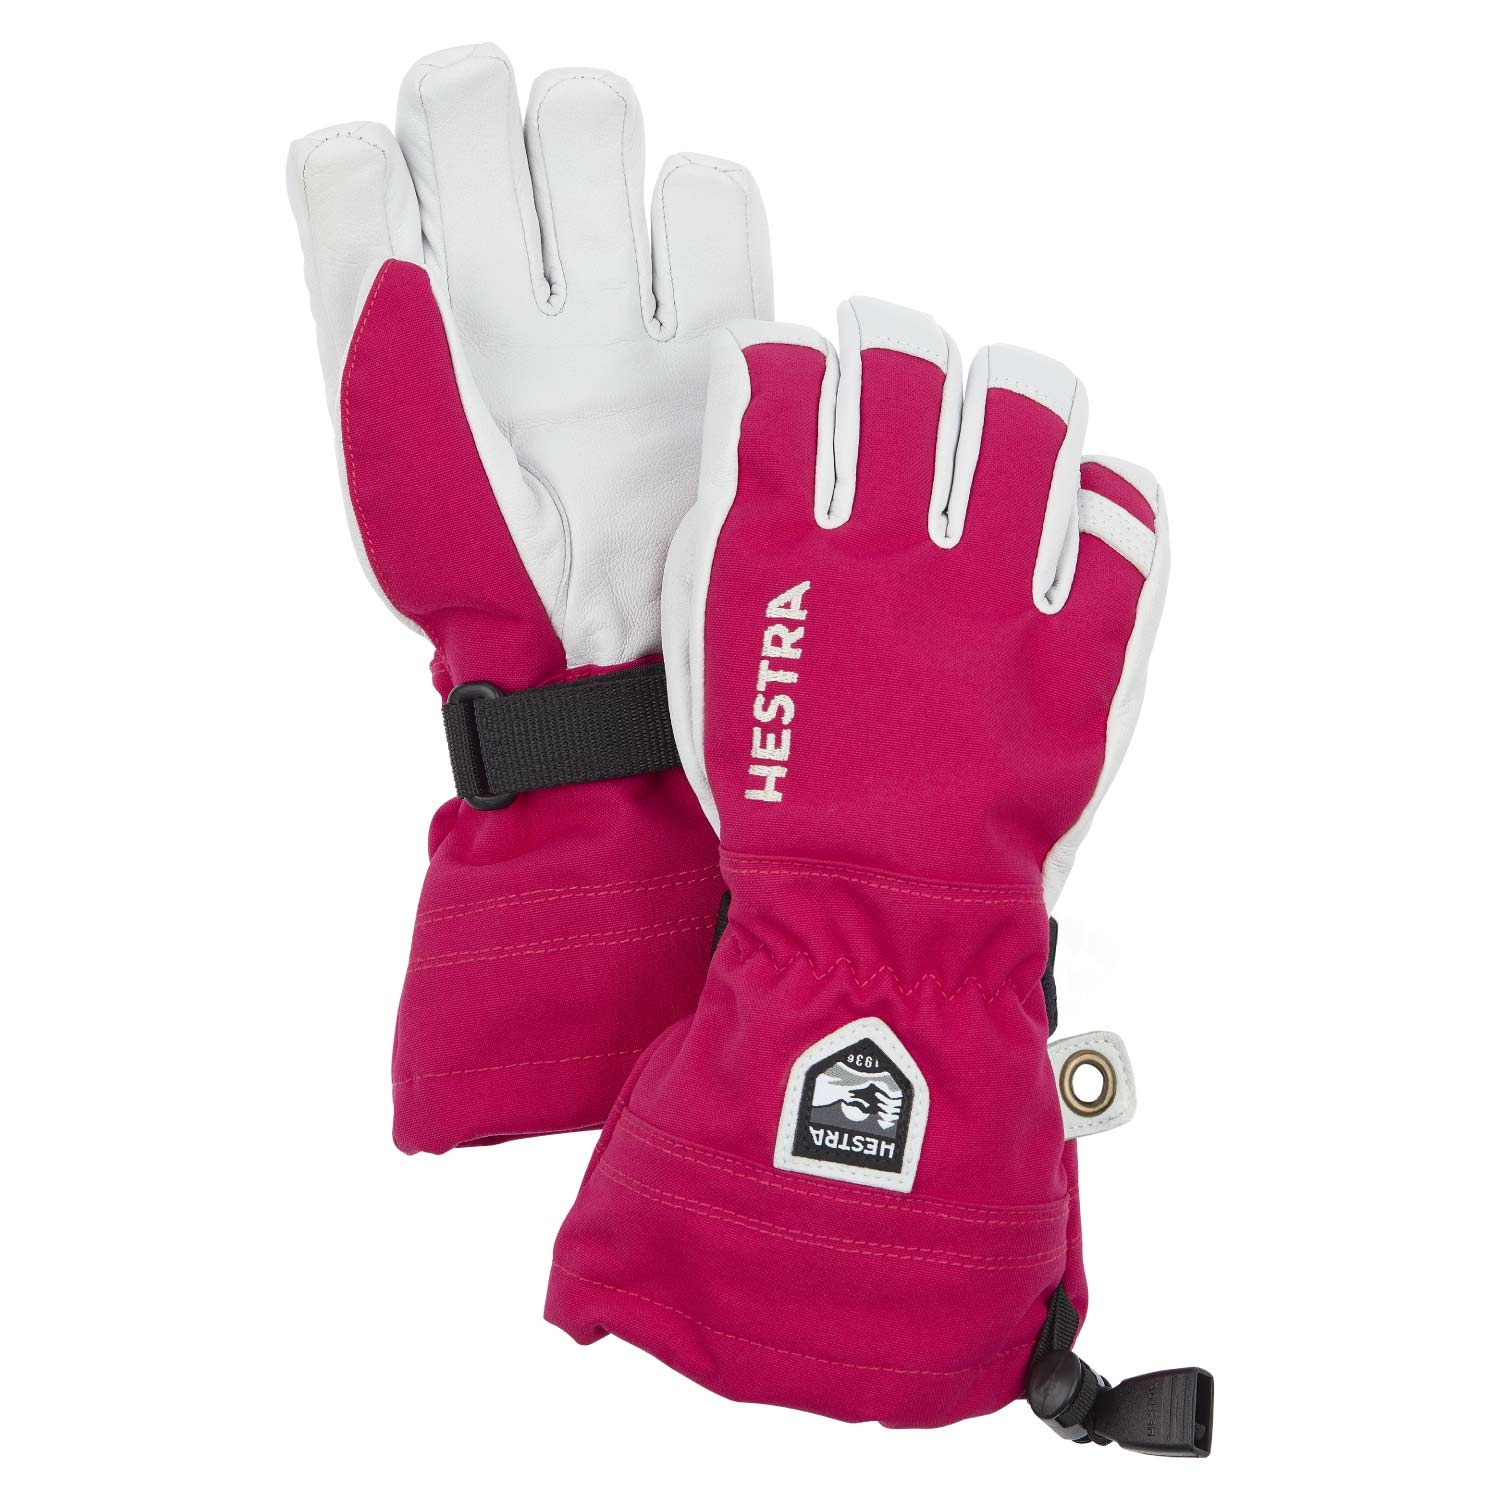 Hestra Army Leather Heli Ski Junior Gloves Pink 2021